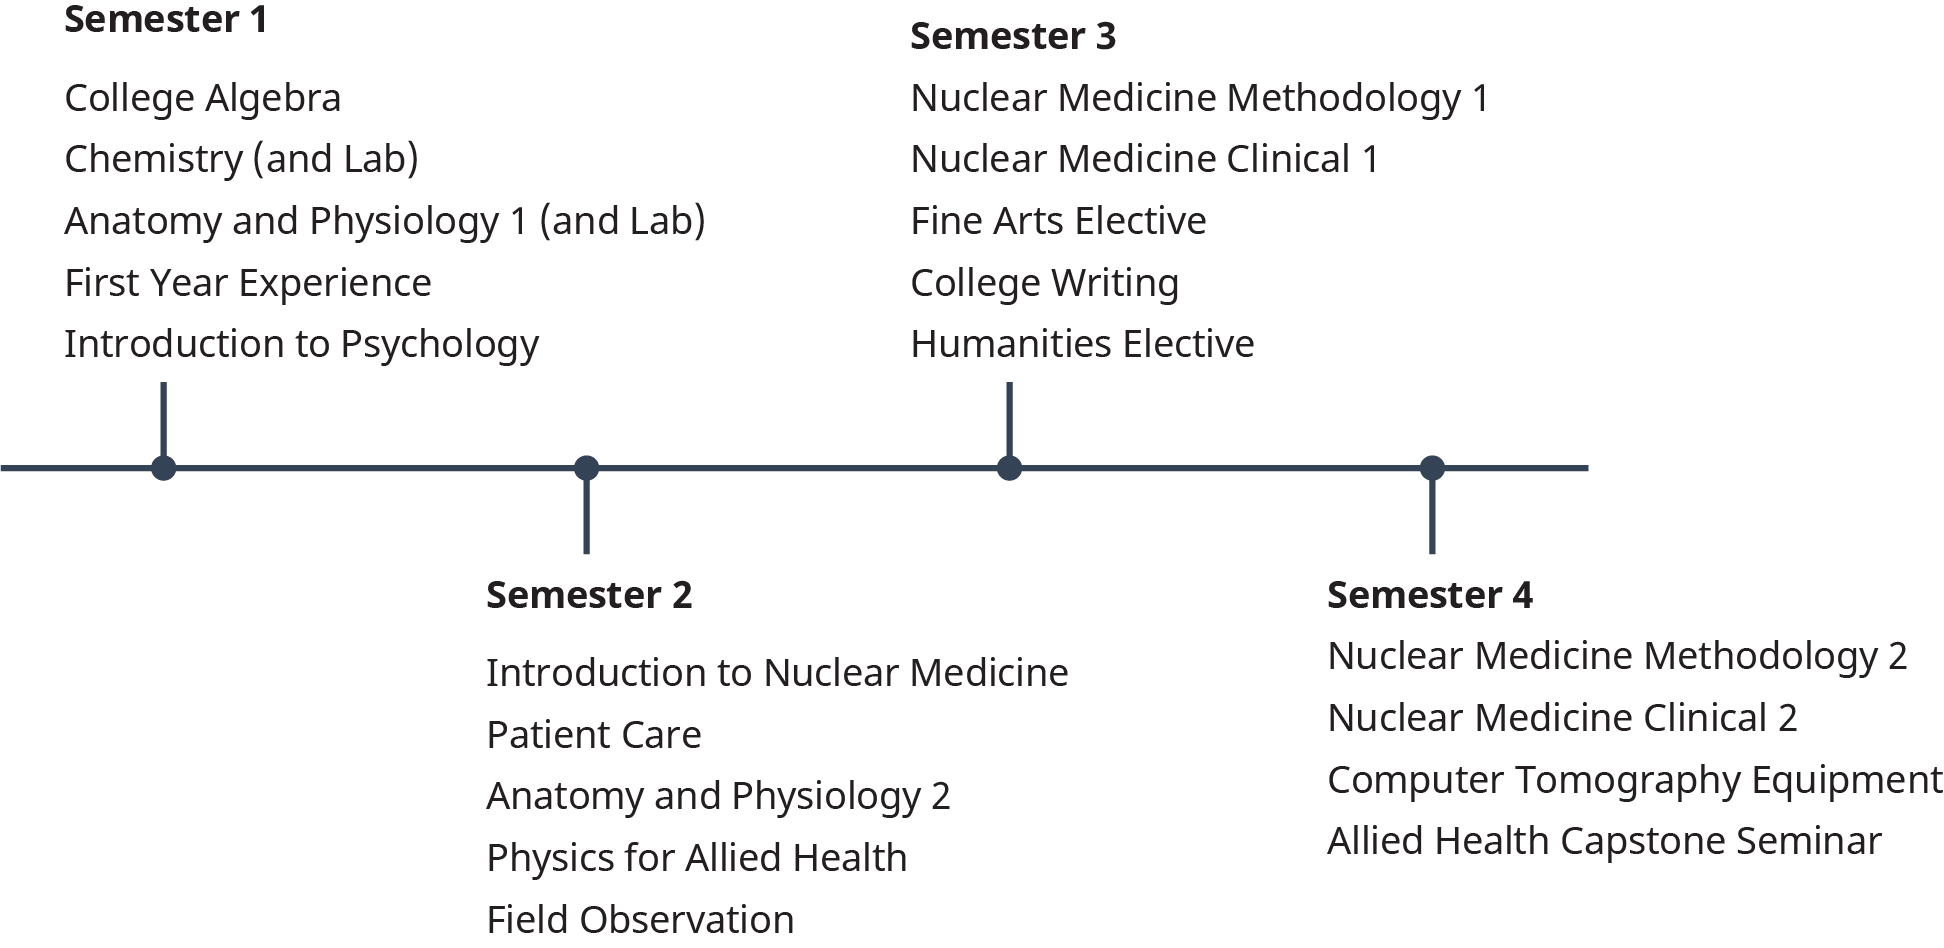 A timeline displays the list of subjects to be studied by students in four semesters.